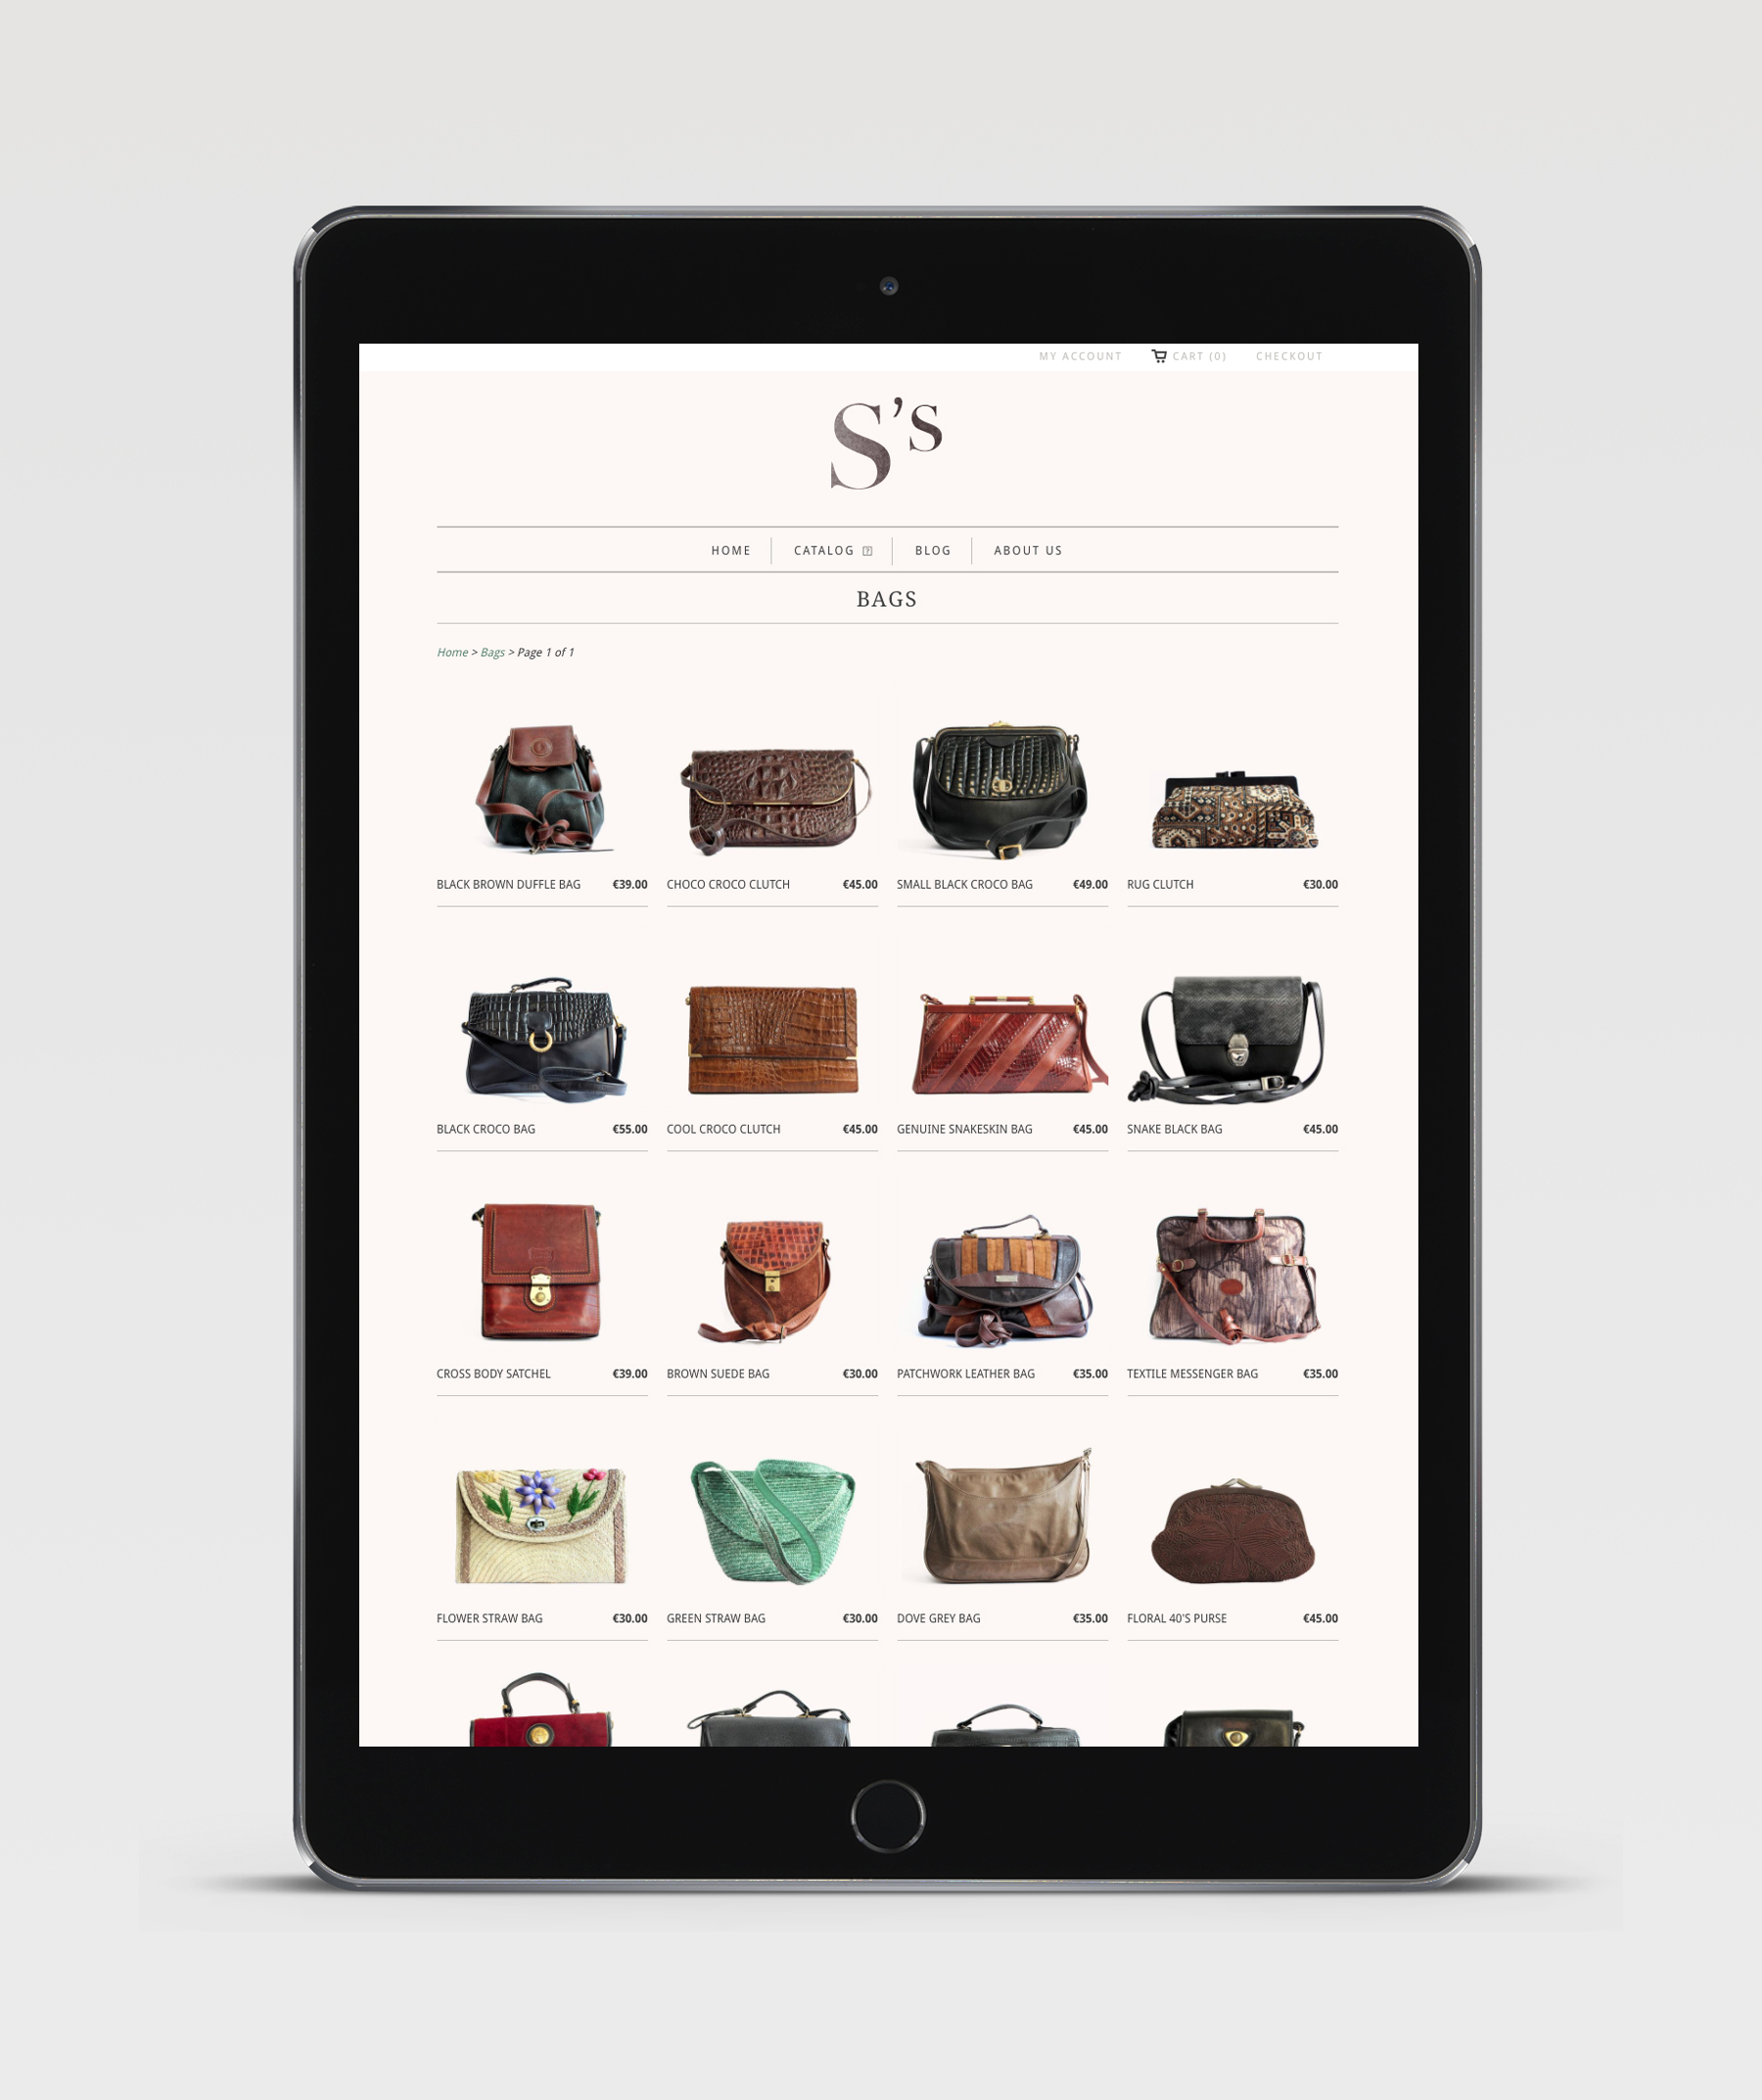 Stiinas-tablet-bags